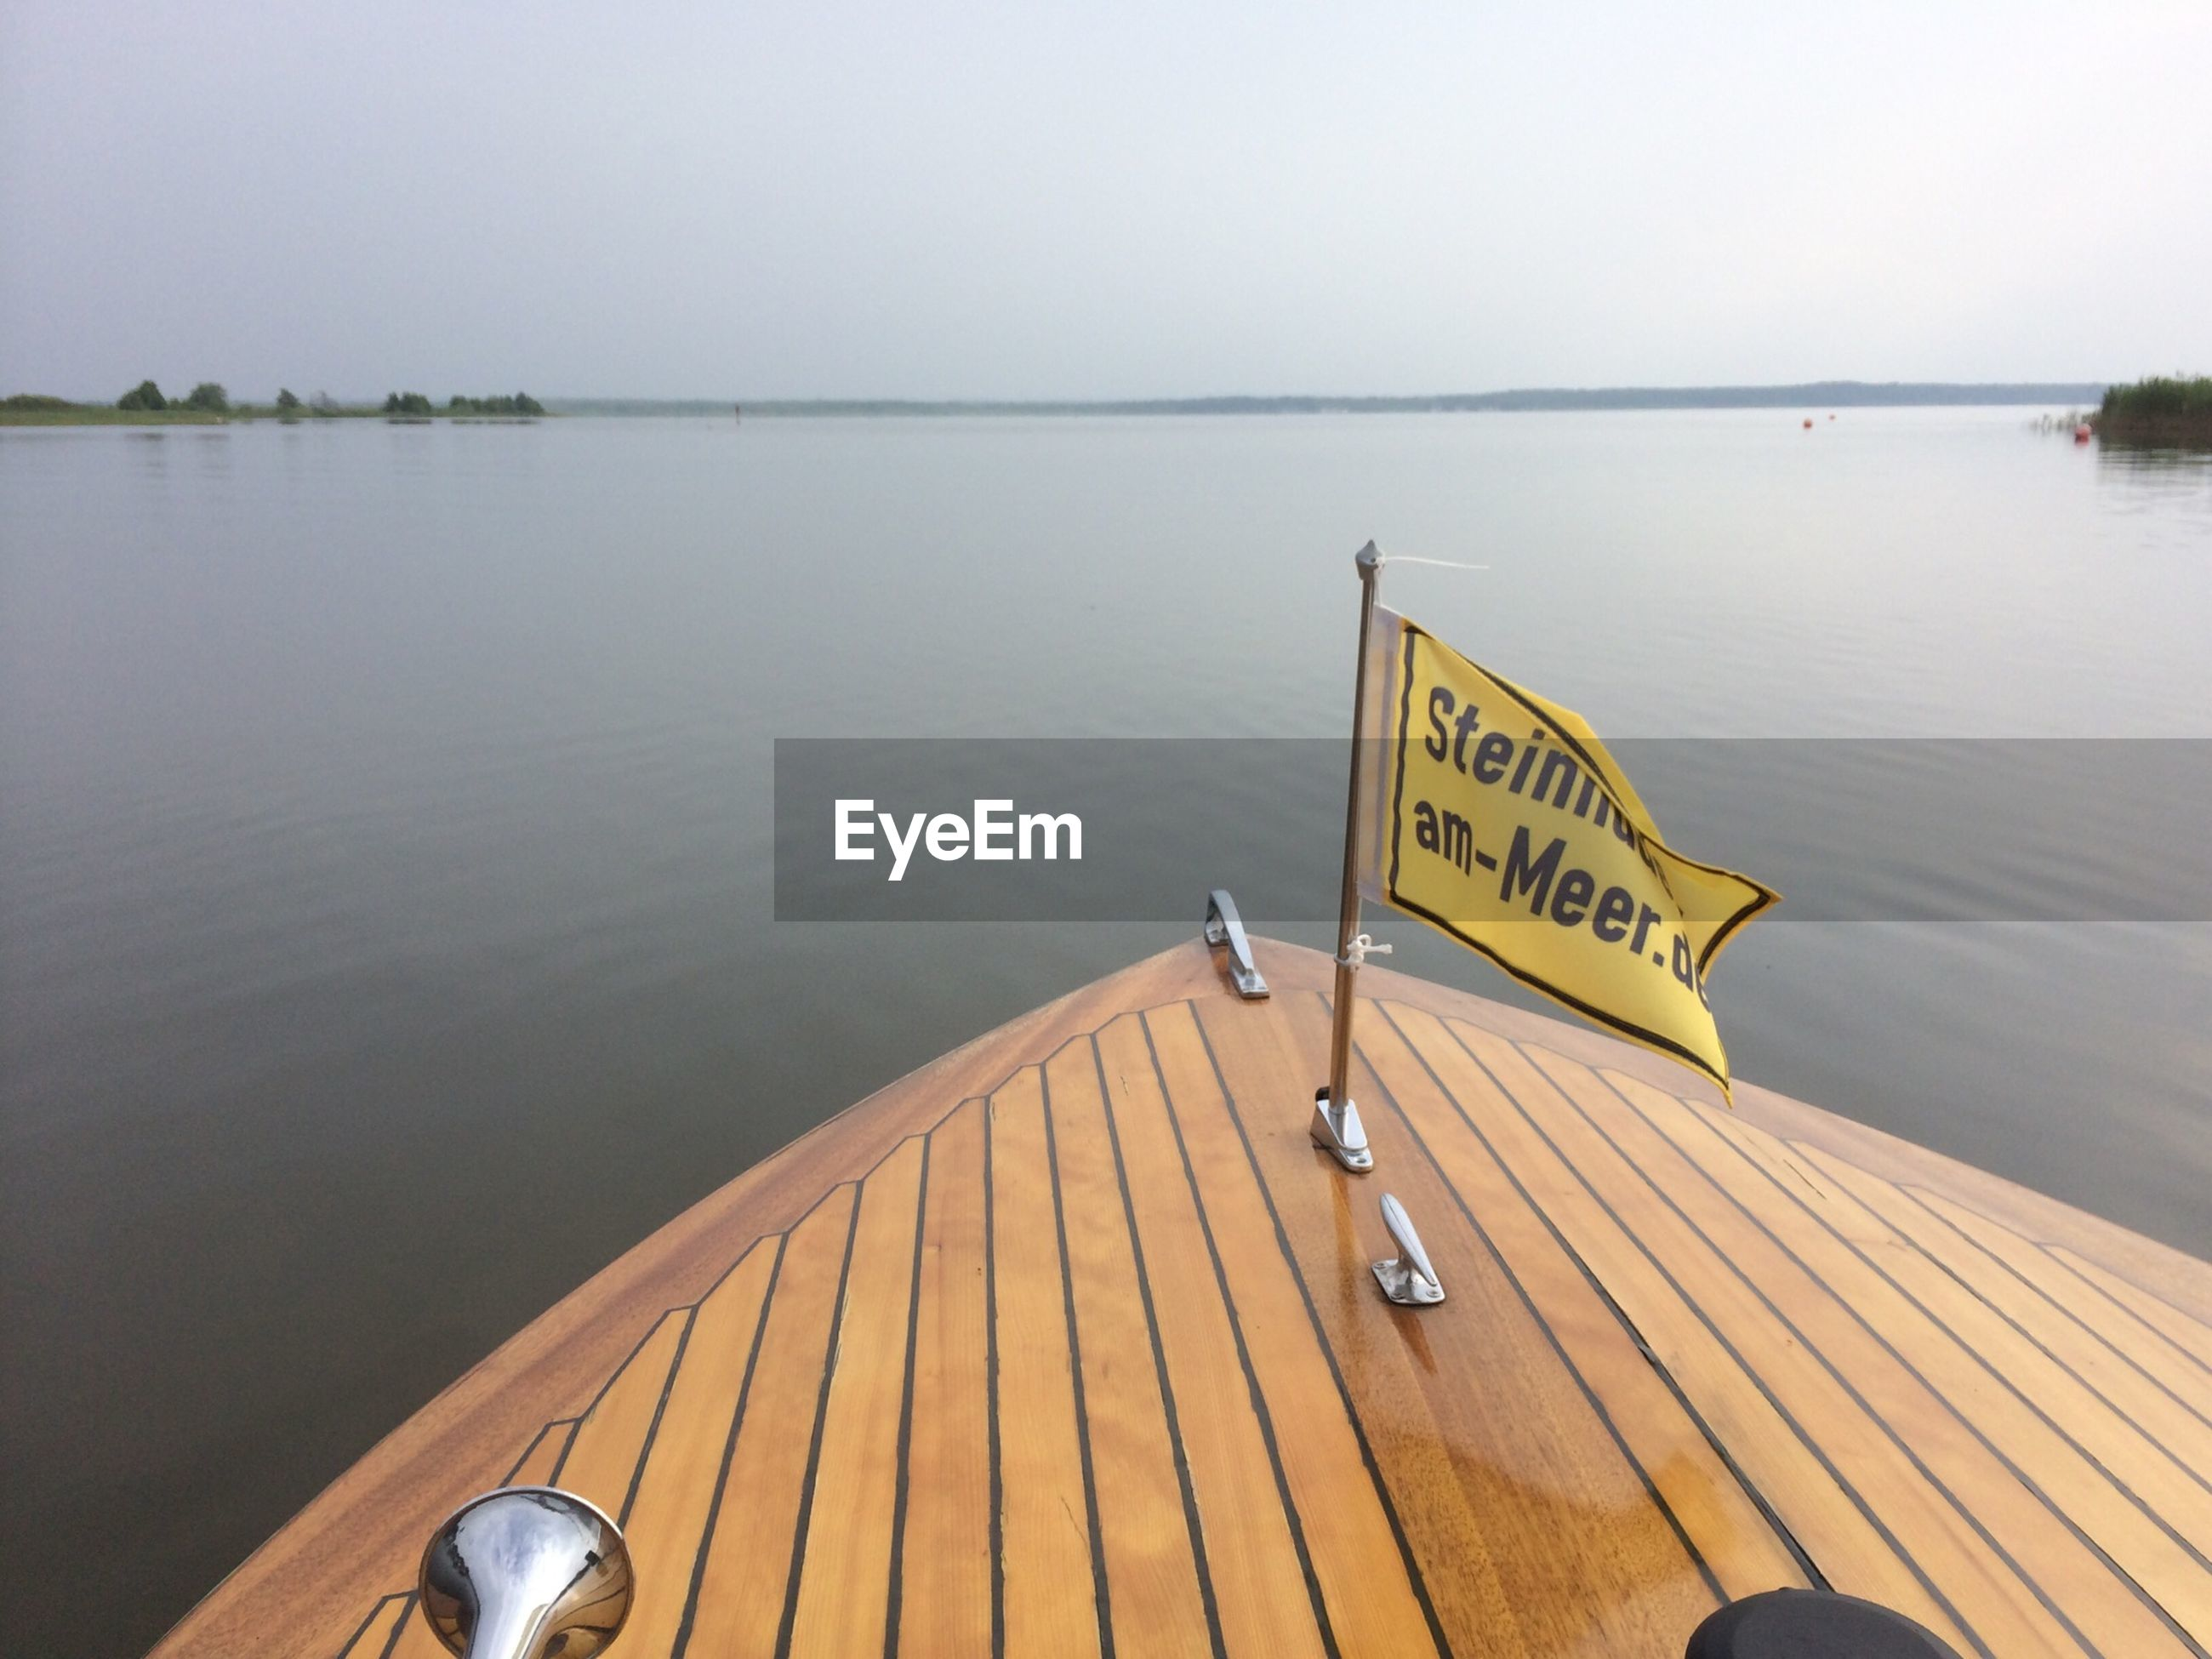 water, text, western script, sea, pier, tranquil scene, tranquility, wood - material, communication, horizon over water, sky, nature, scenics, sign, information sign, nautical vessel, lake, beauty in nature, boat, transportation